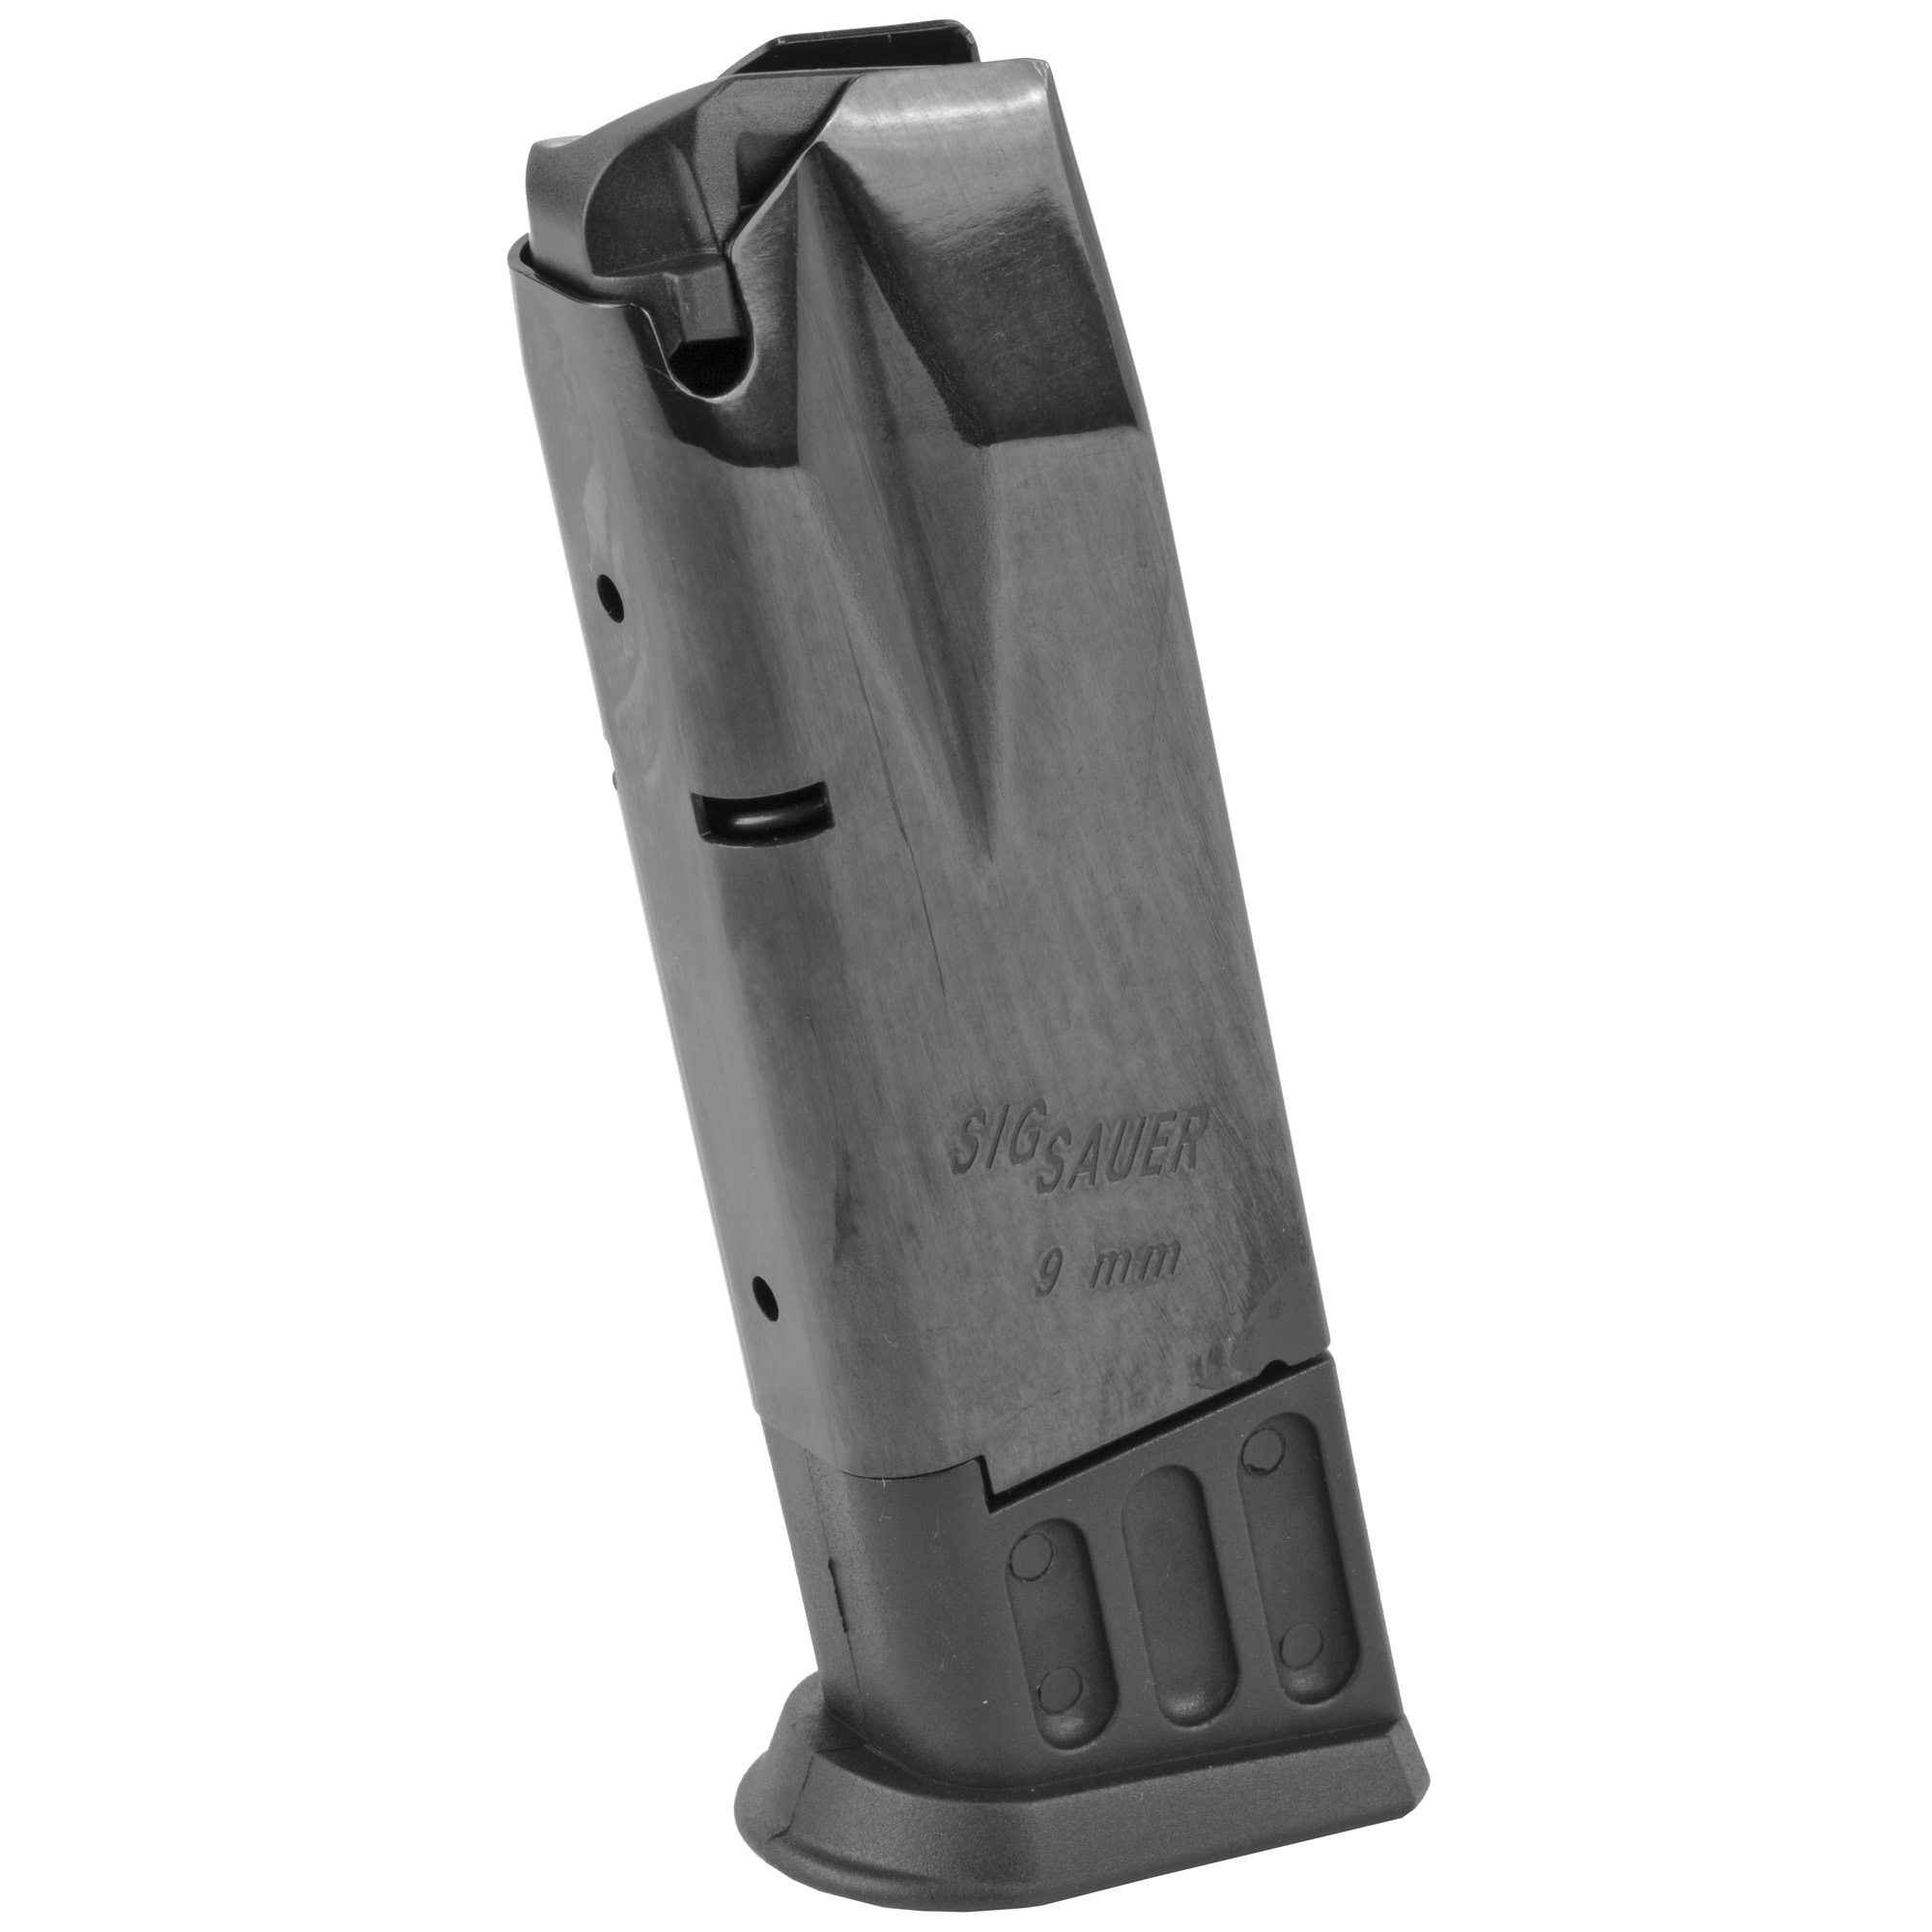 Sig Sauer P229 40 357 10rd Magazine: Sig Sauer Mag 9mm 10rd Blue P229 Mag-229-9-10 For Sale By